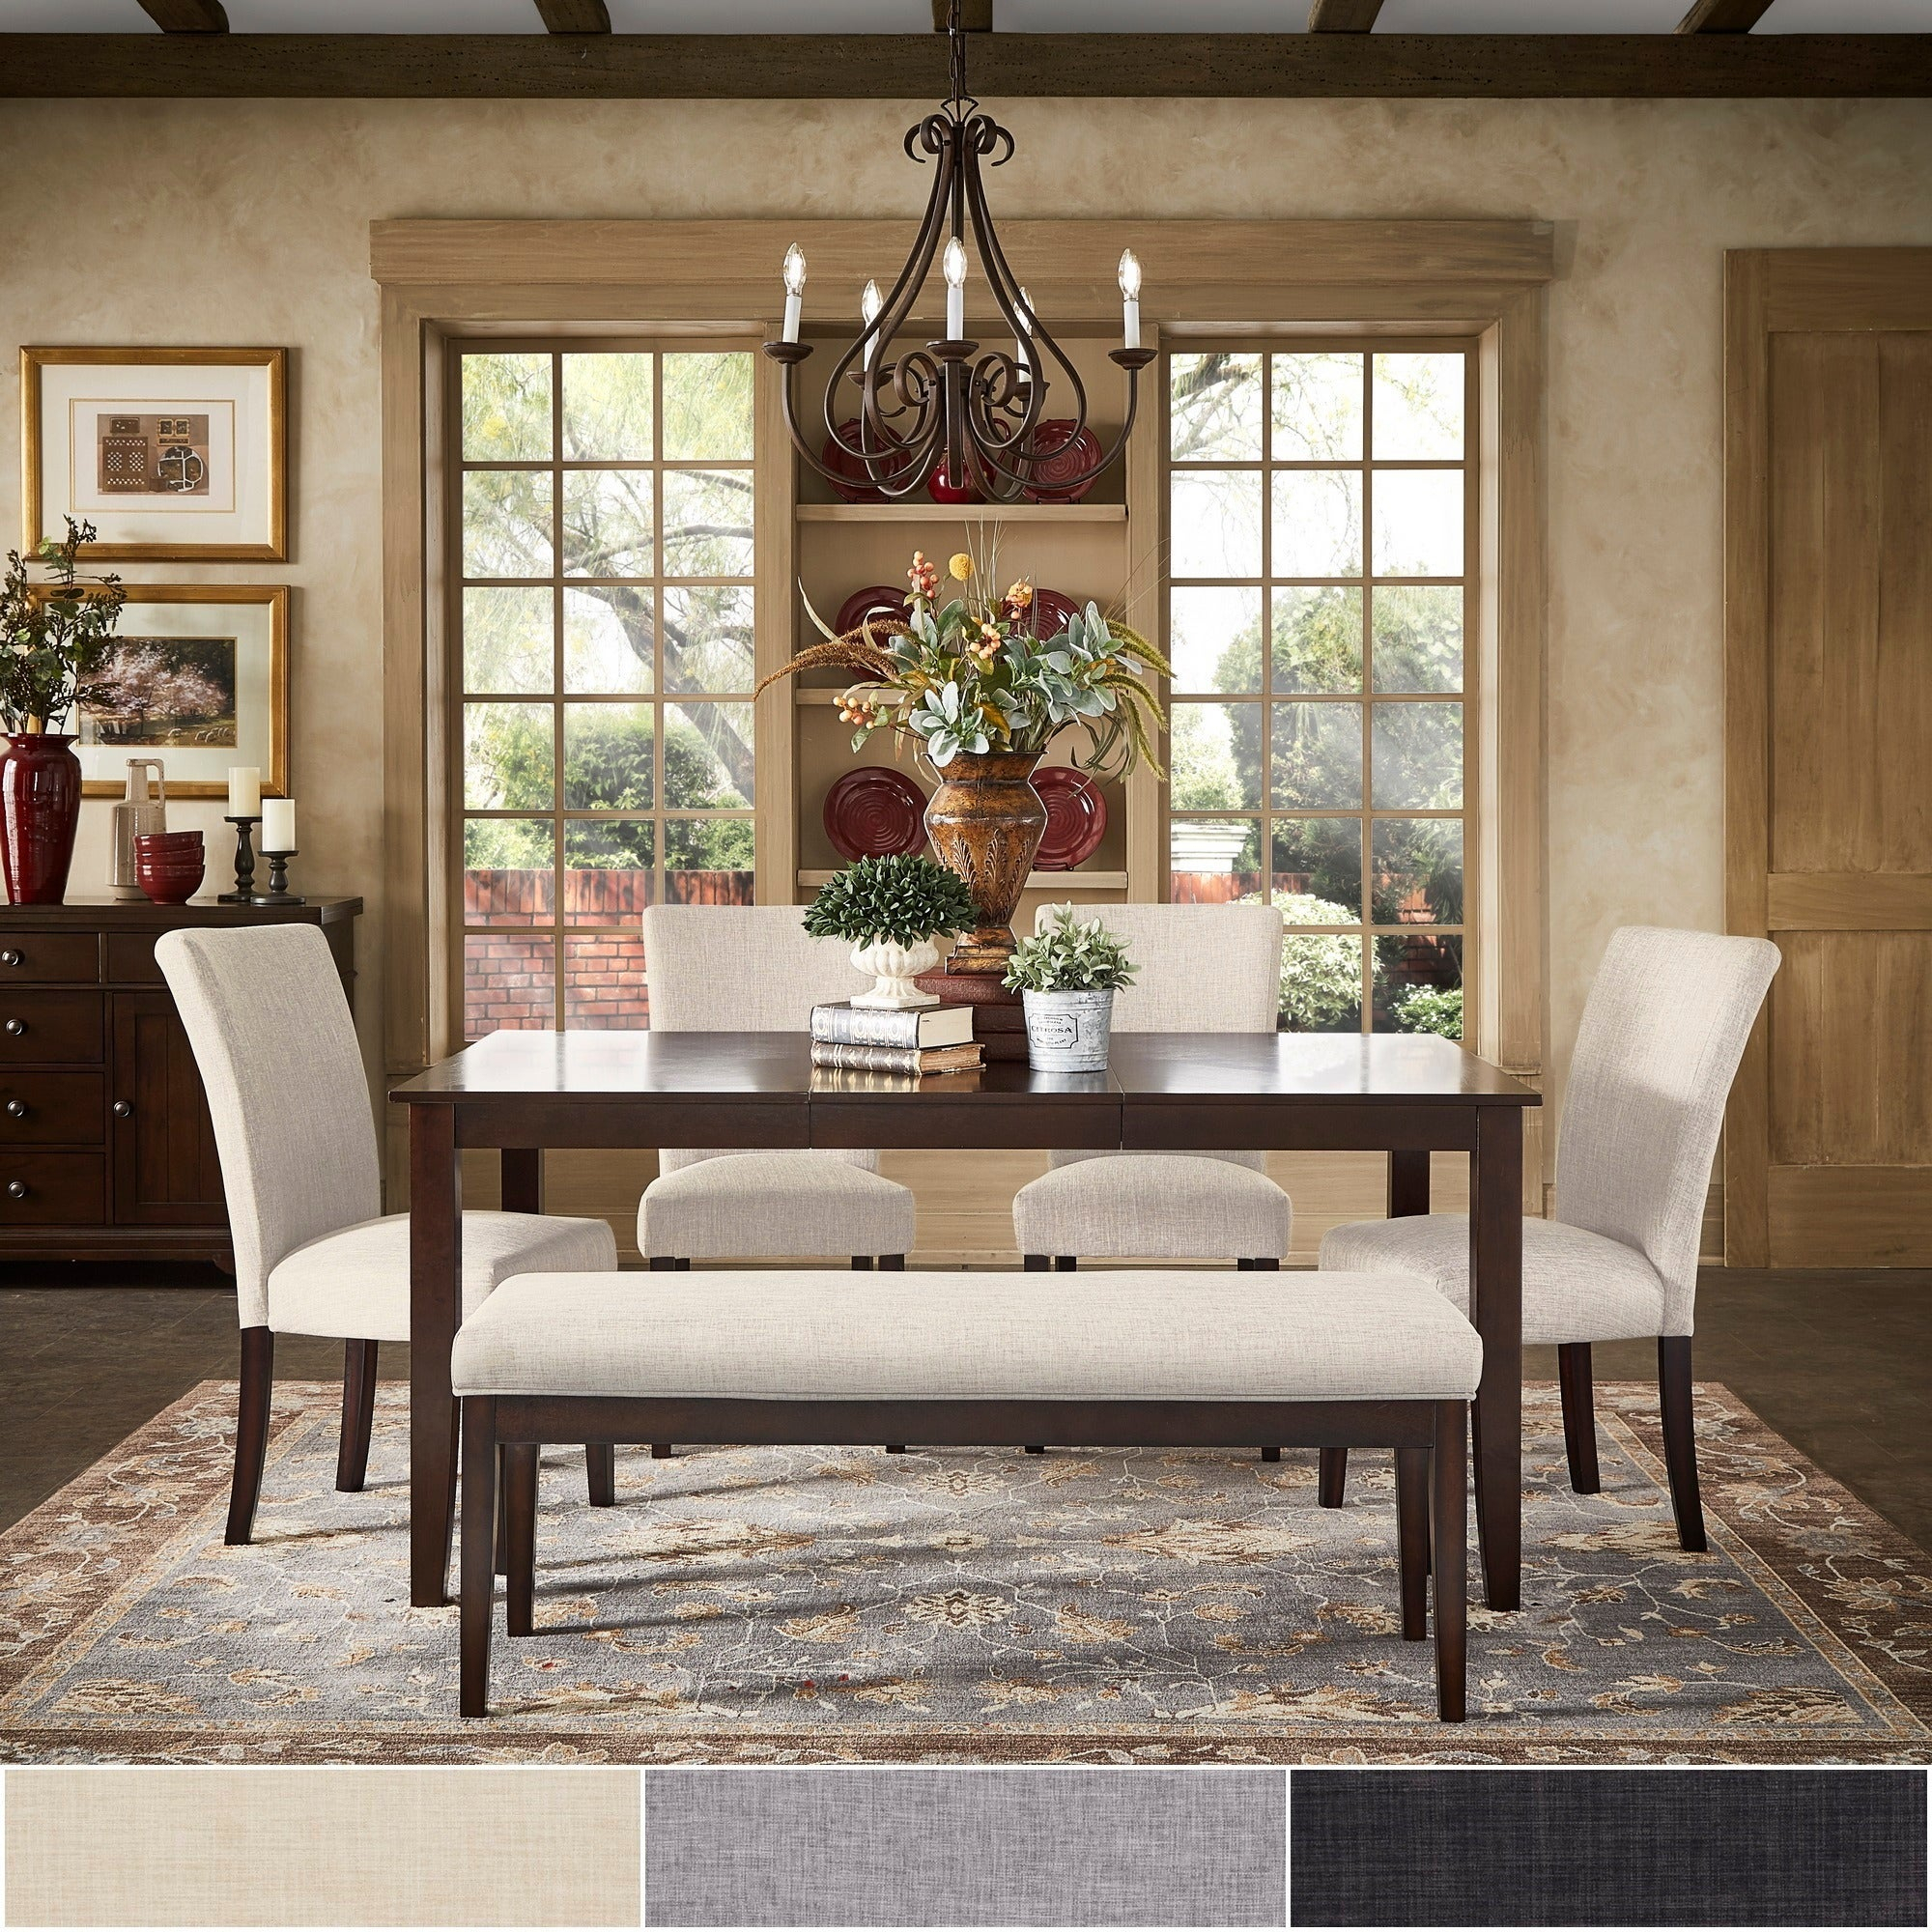 Buy 6 Piece Sets Kitchen & Dining Room Sets Online At Overstock With Regard To Most Current Osterman 6 Piece Extendable Dining Sets (Set Of 6) (Image 6 of 20)